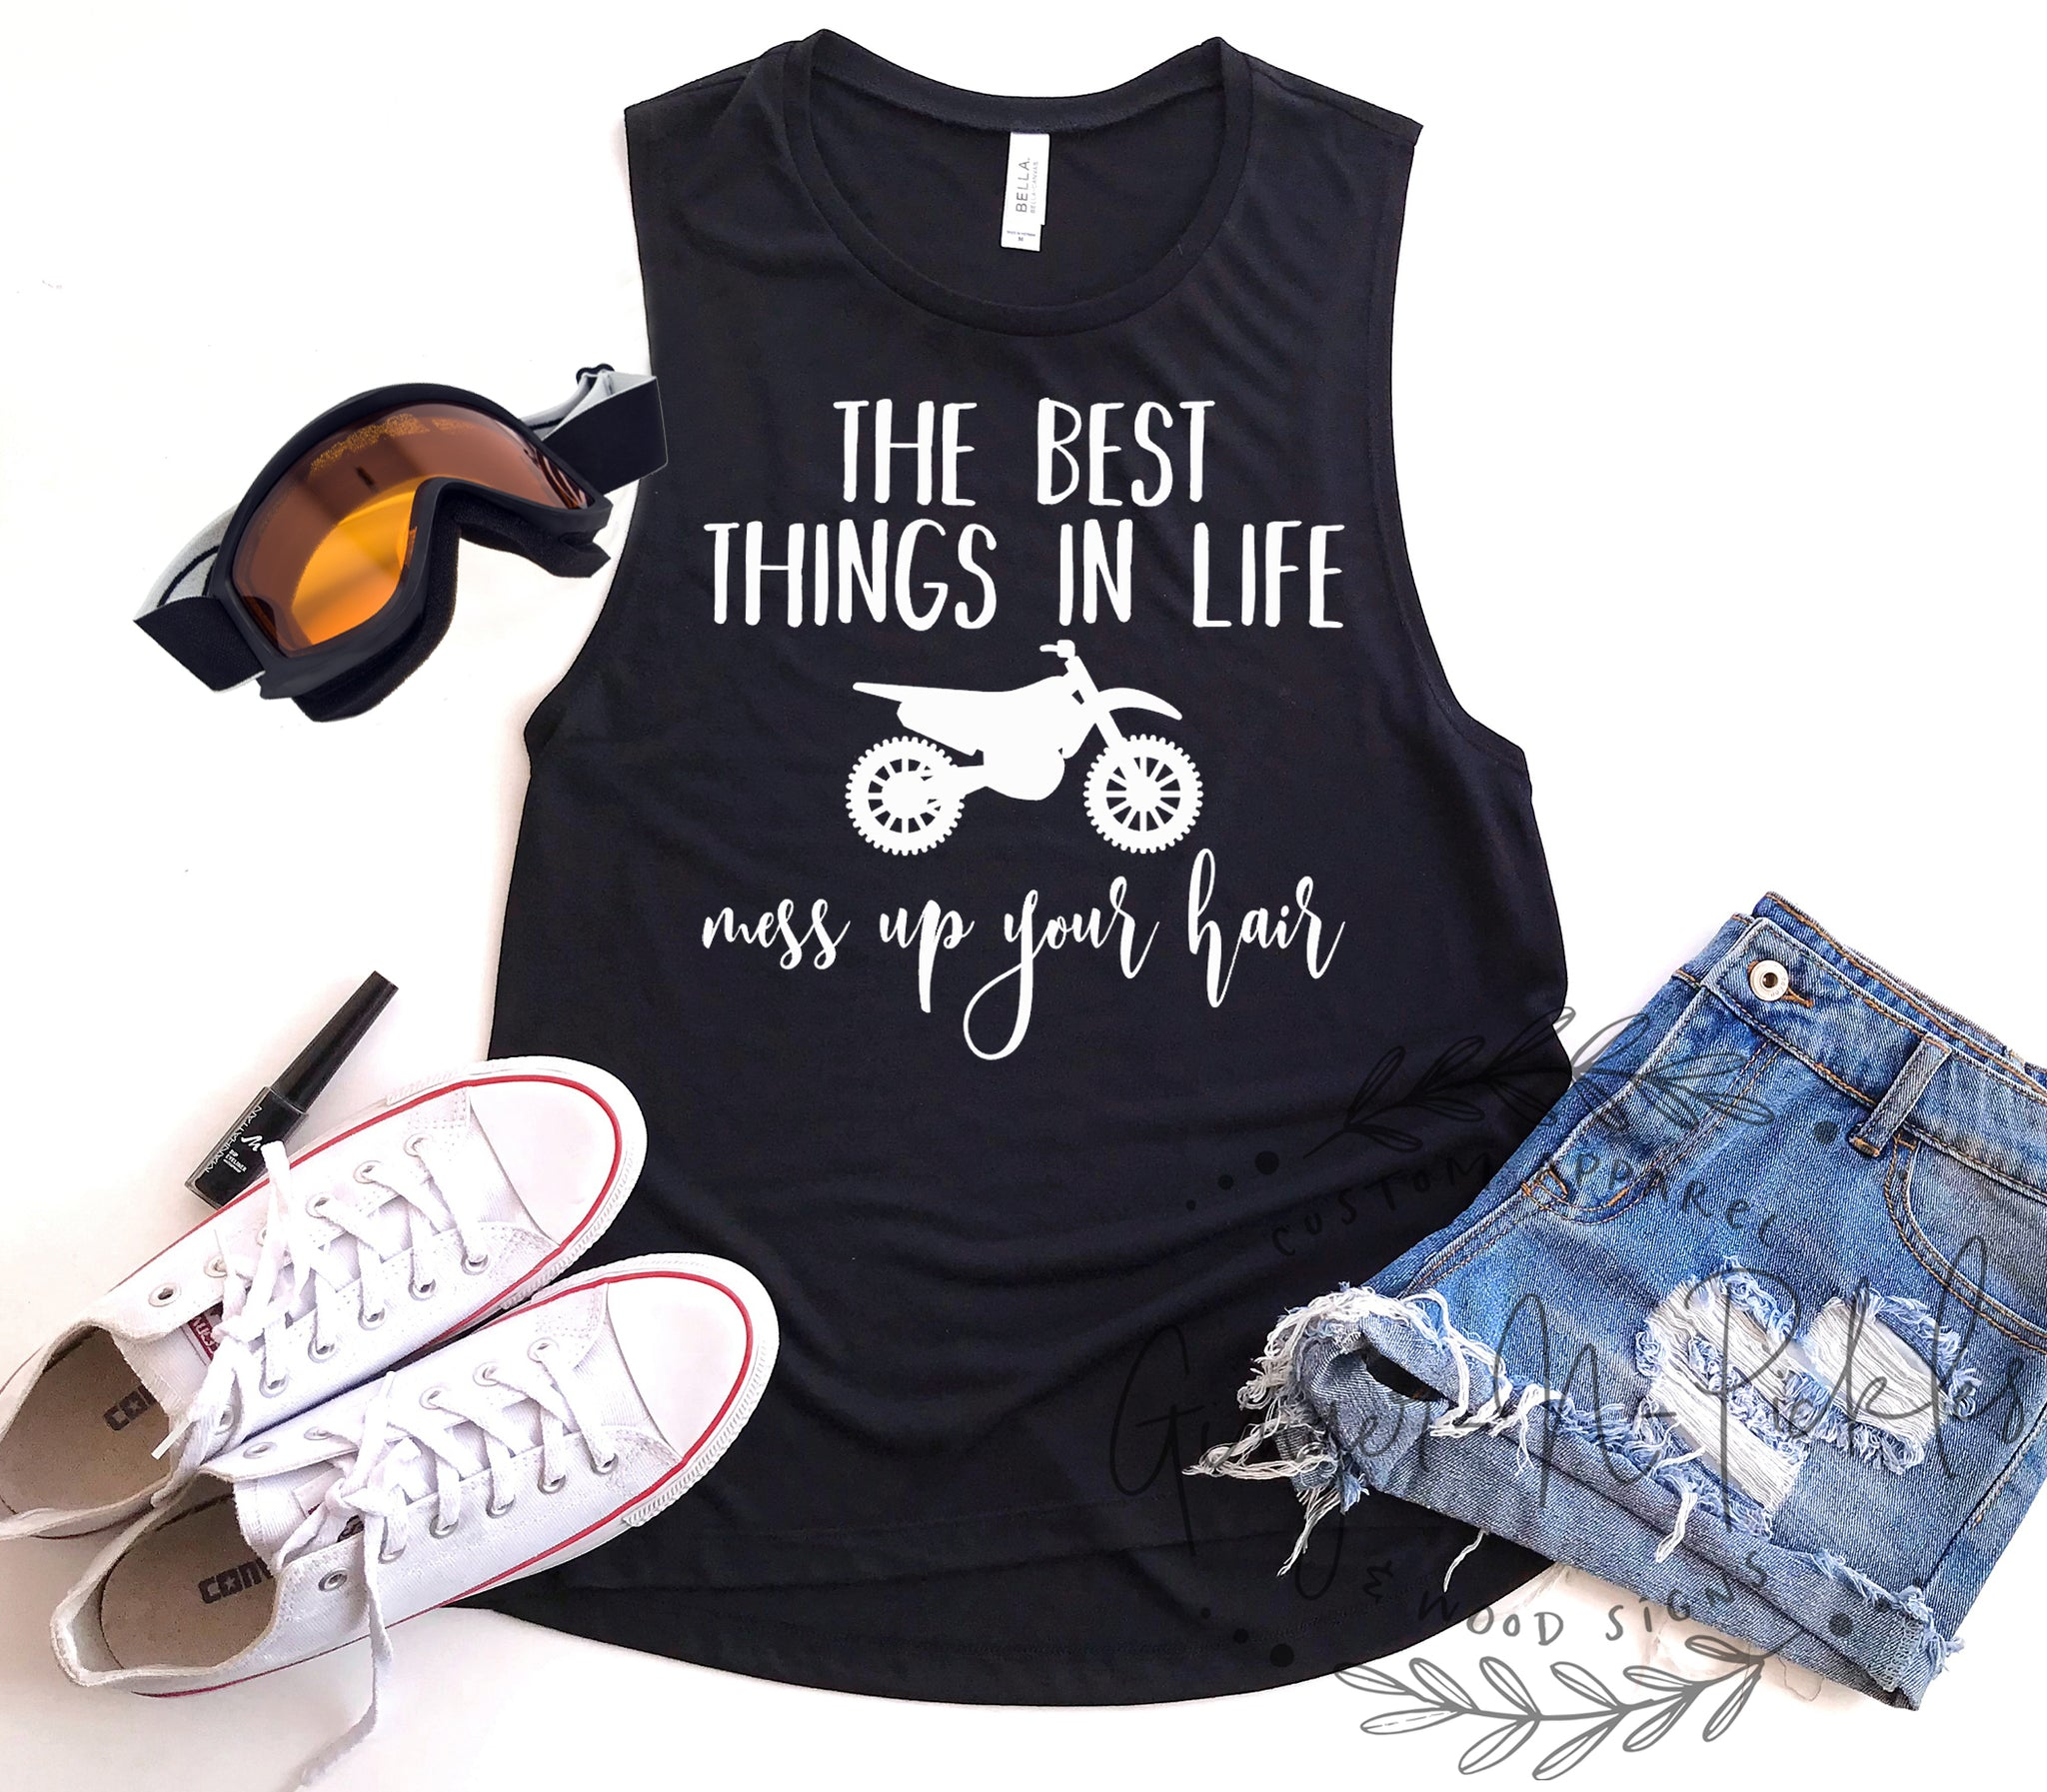 The Best Things In Life Mess Up Your Hair Ladies Dirt Bike Shirt, Funny Ladies Muscle Tank, Moto Mom Shirt, Moto Chick Shirt